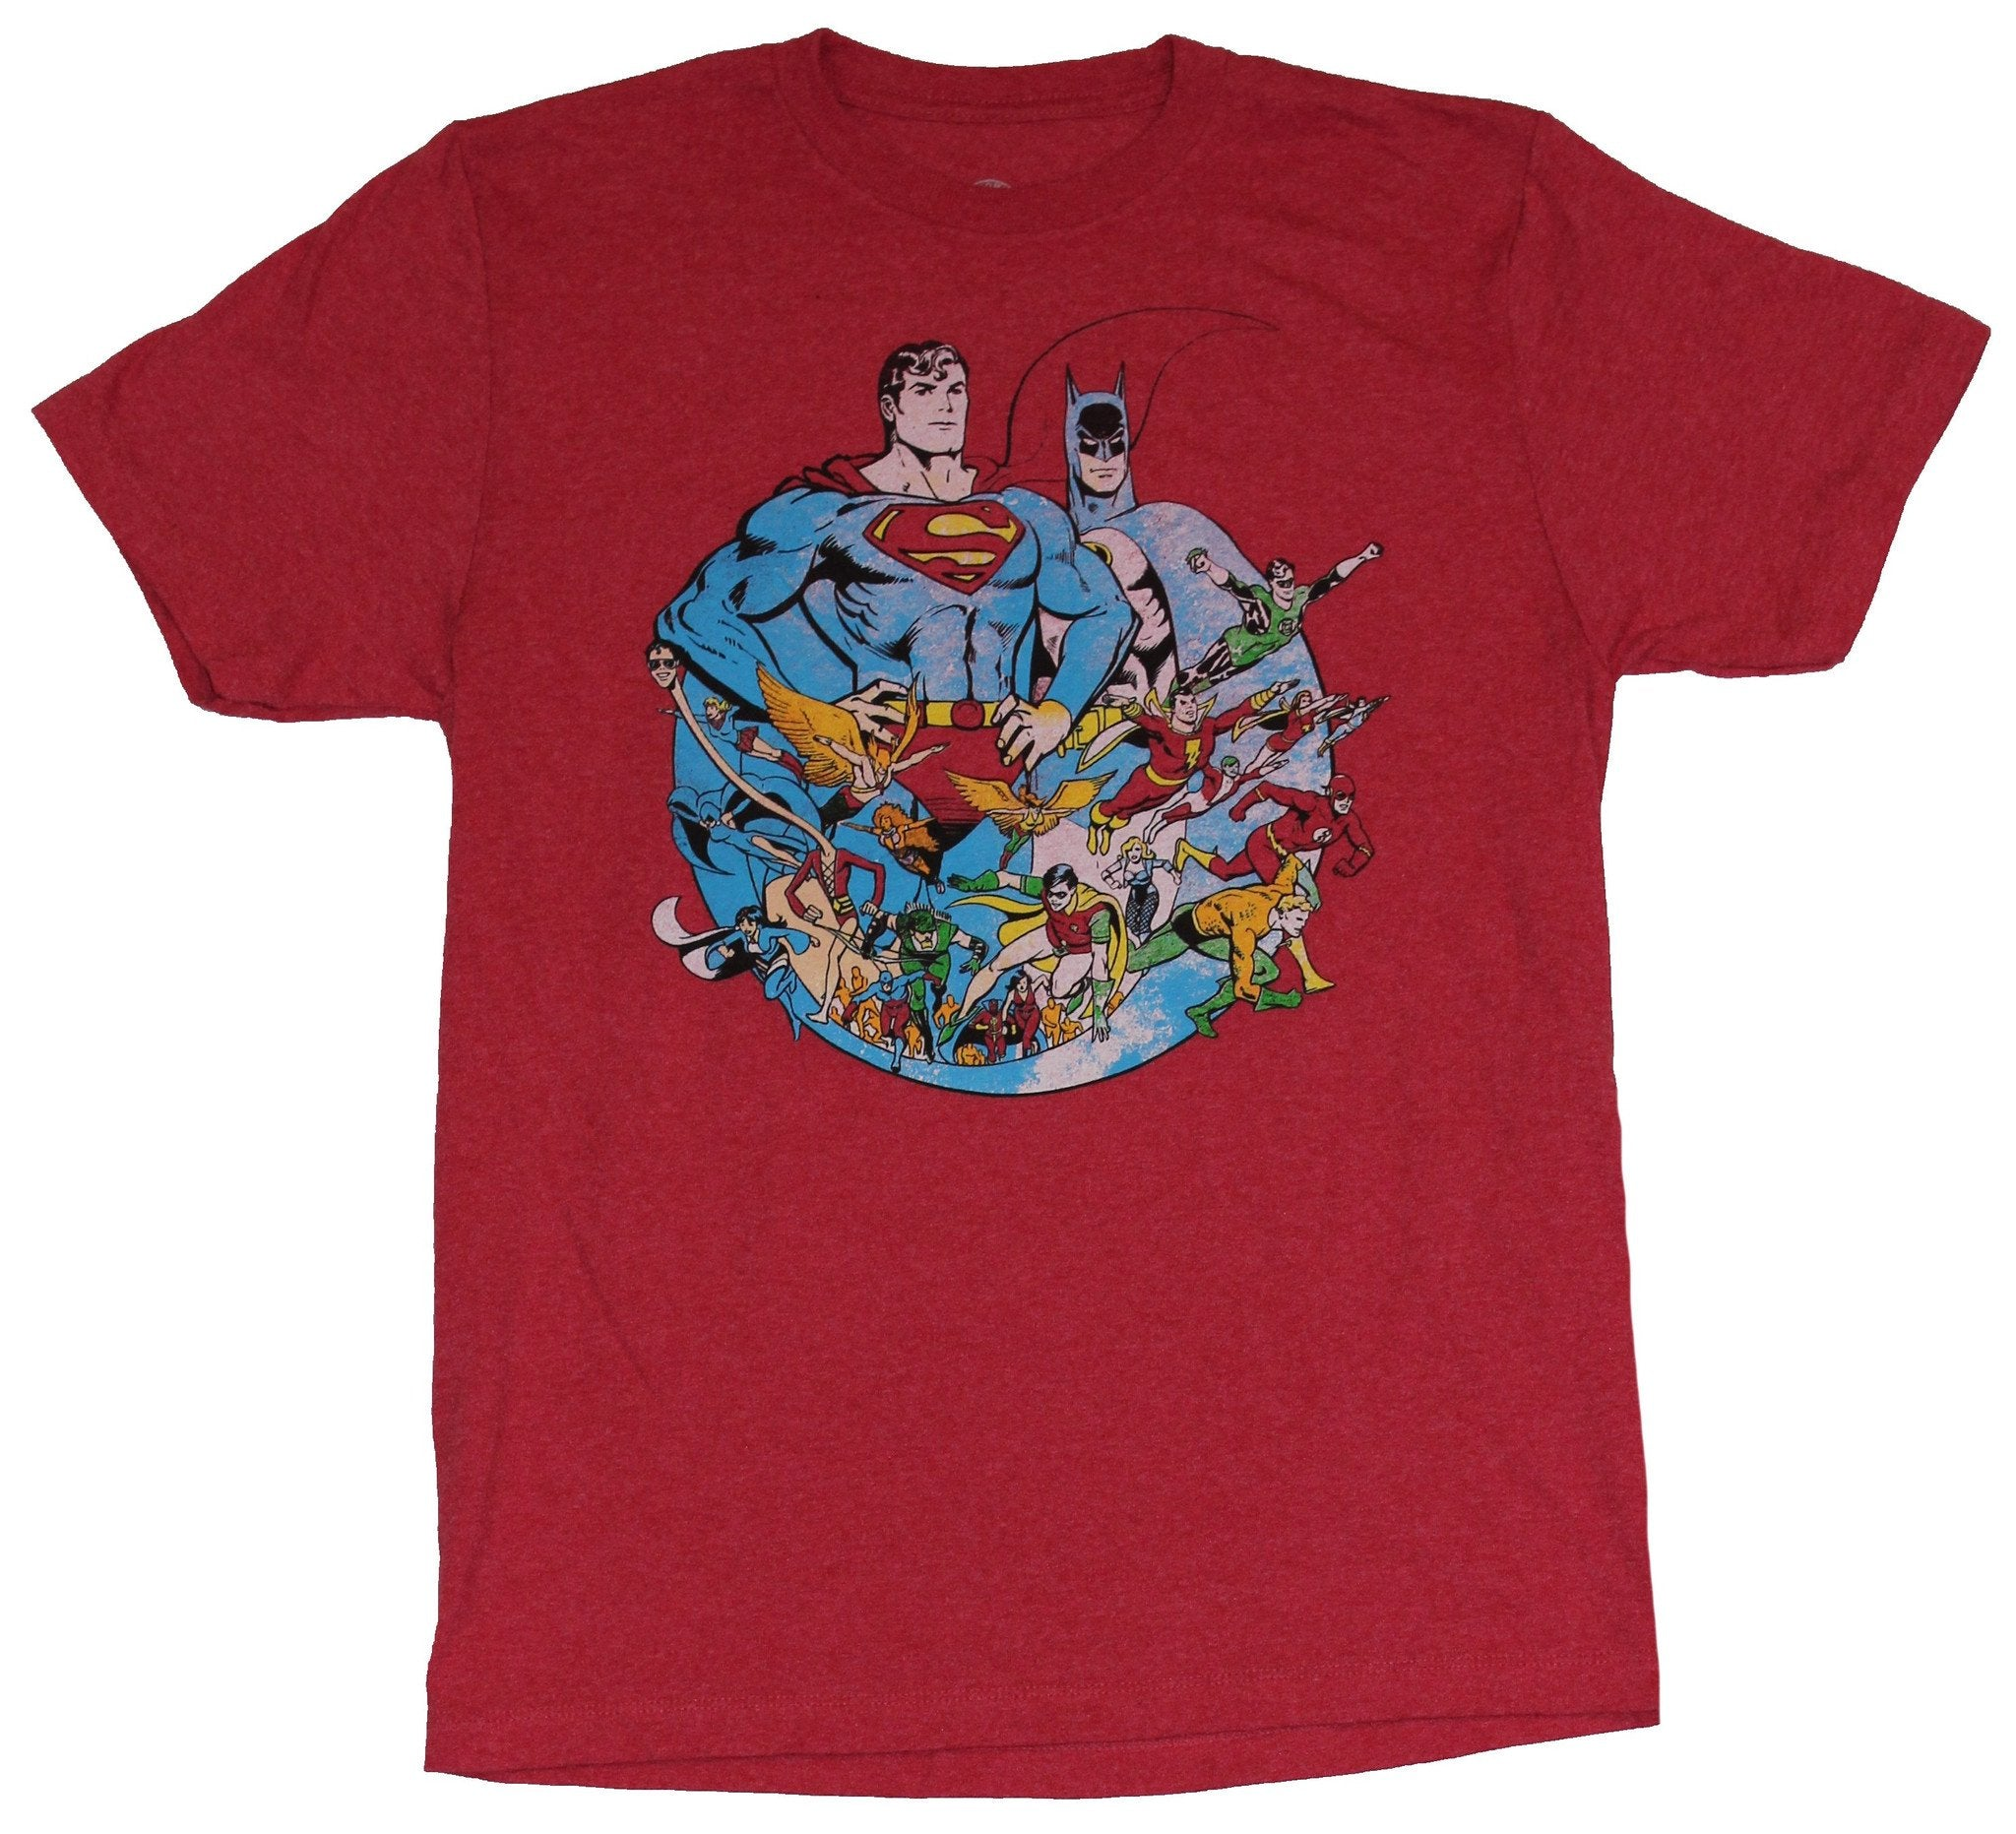 Dc Comics Mens T-Shirt - Distressed Superman Batman Circle Army of Heroes Image